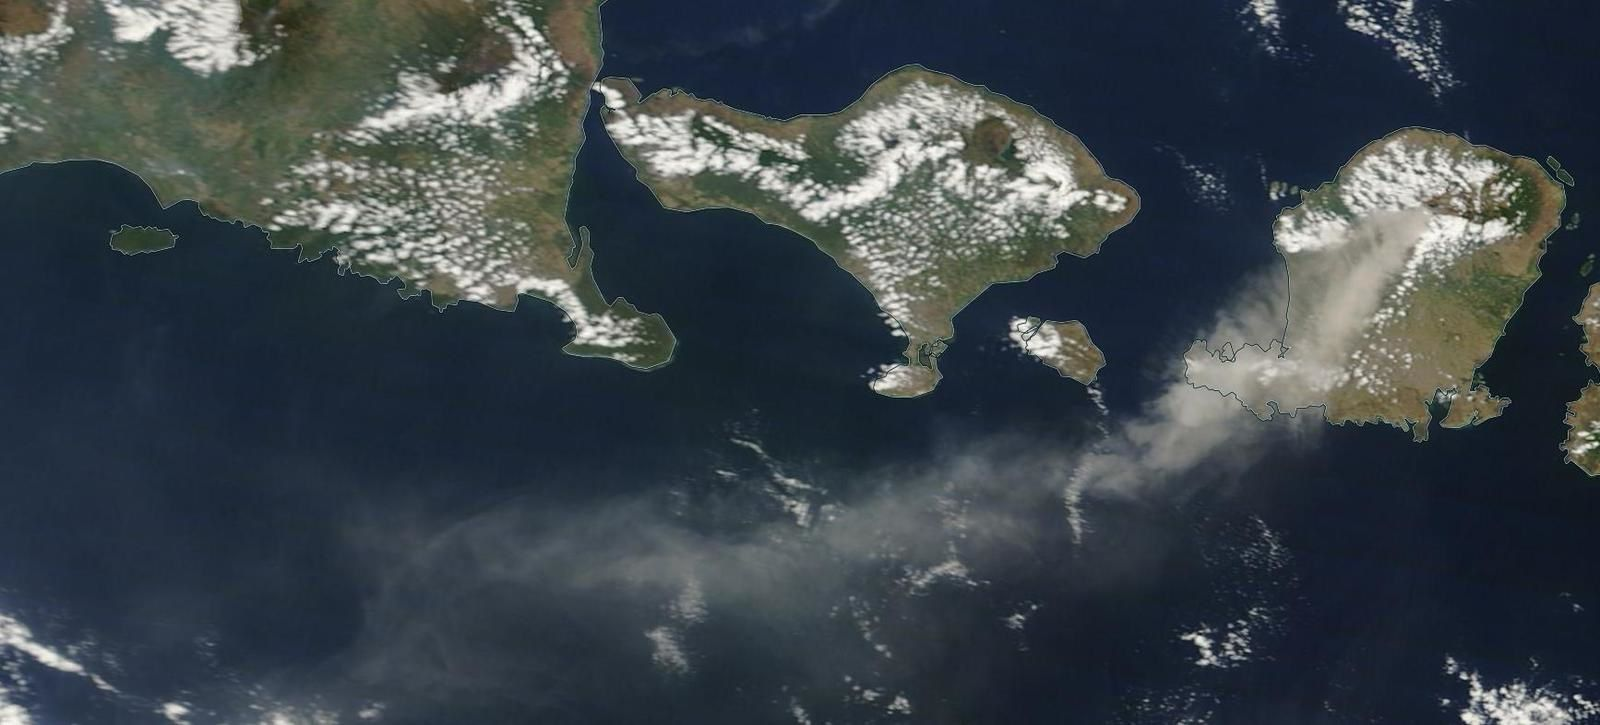 Rinjani - dispersion of the ash cloud 05/11/2015 - Doc. Nasa worlview / EODIS